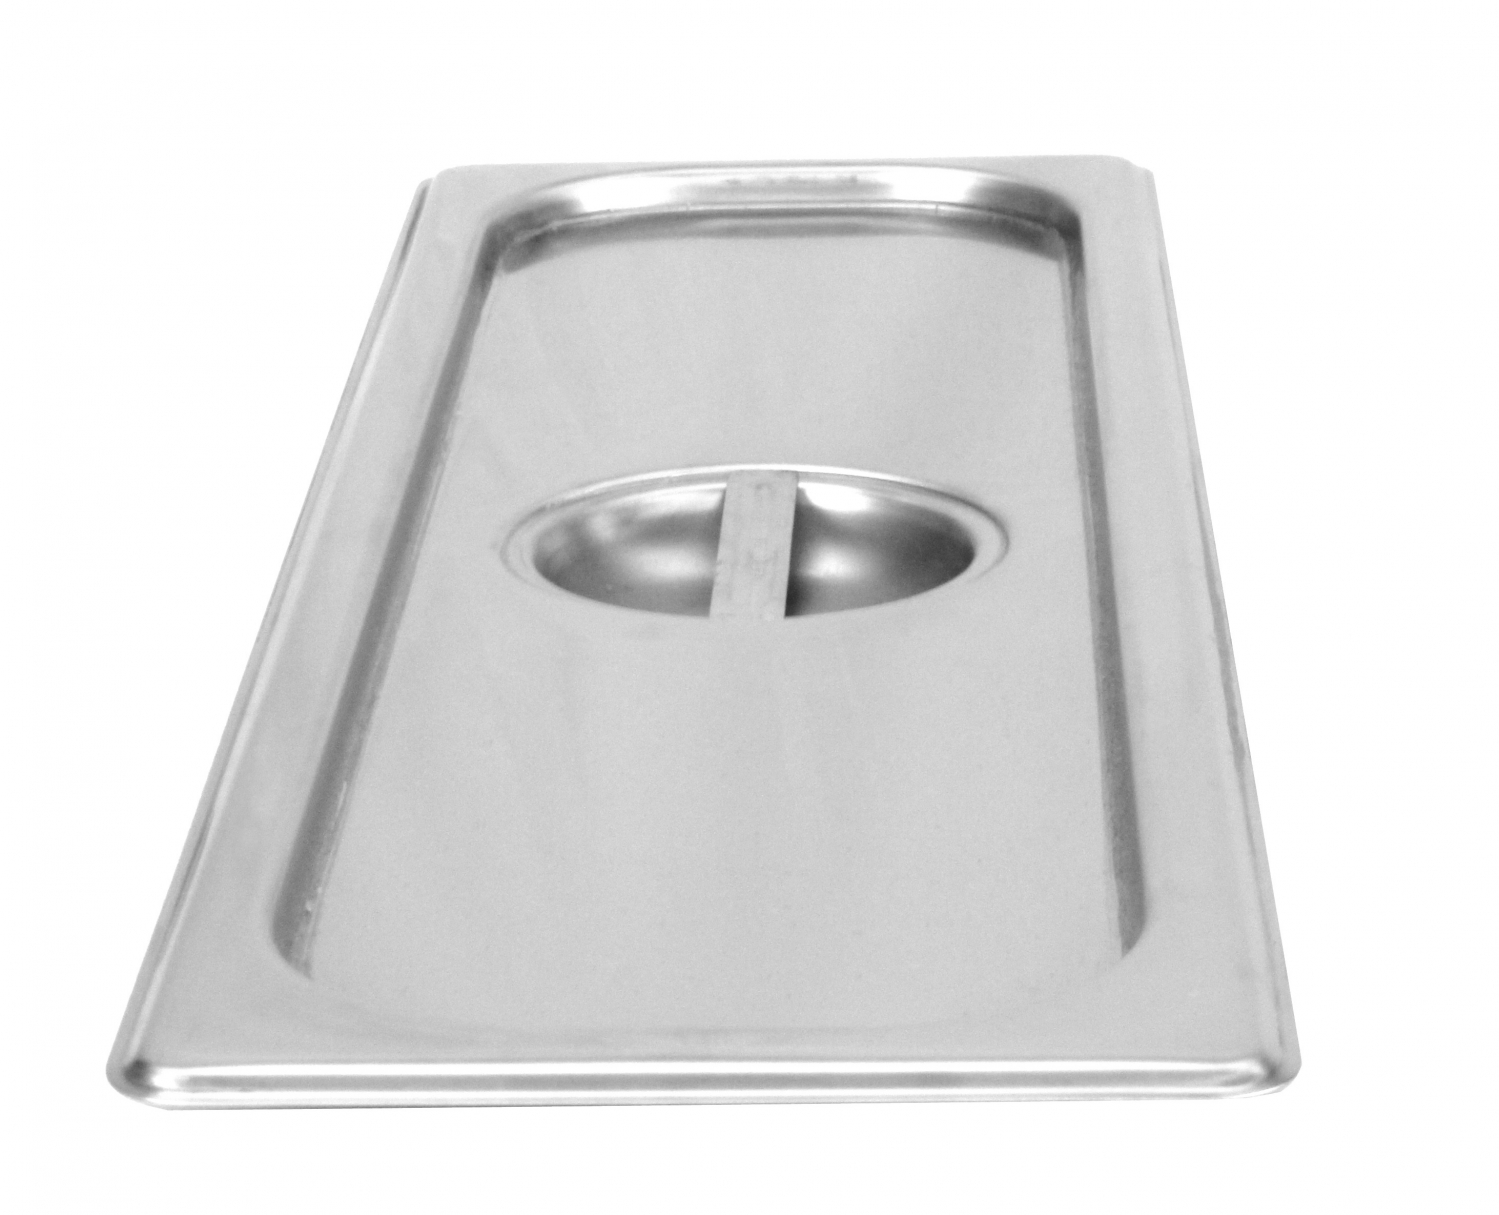 Thunder Group STPA7120CL Half Size Solid Cover For Steam Pan